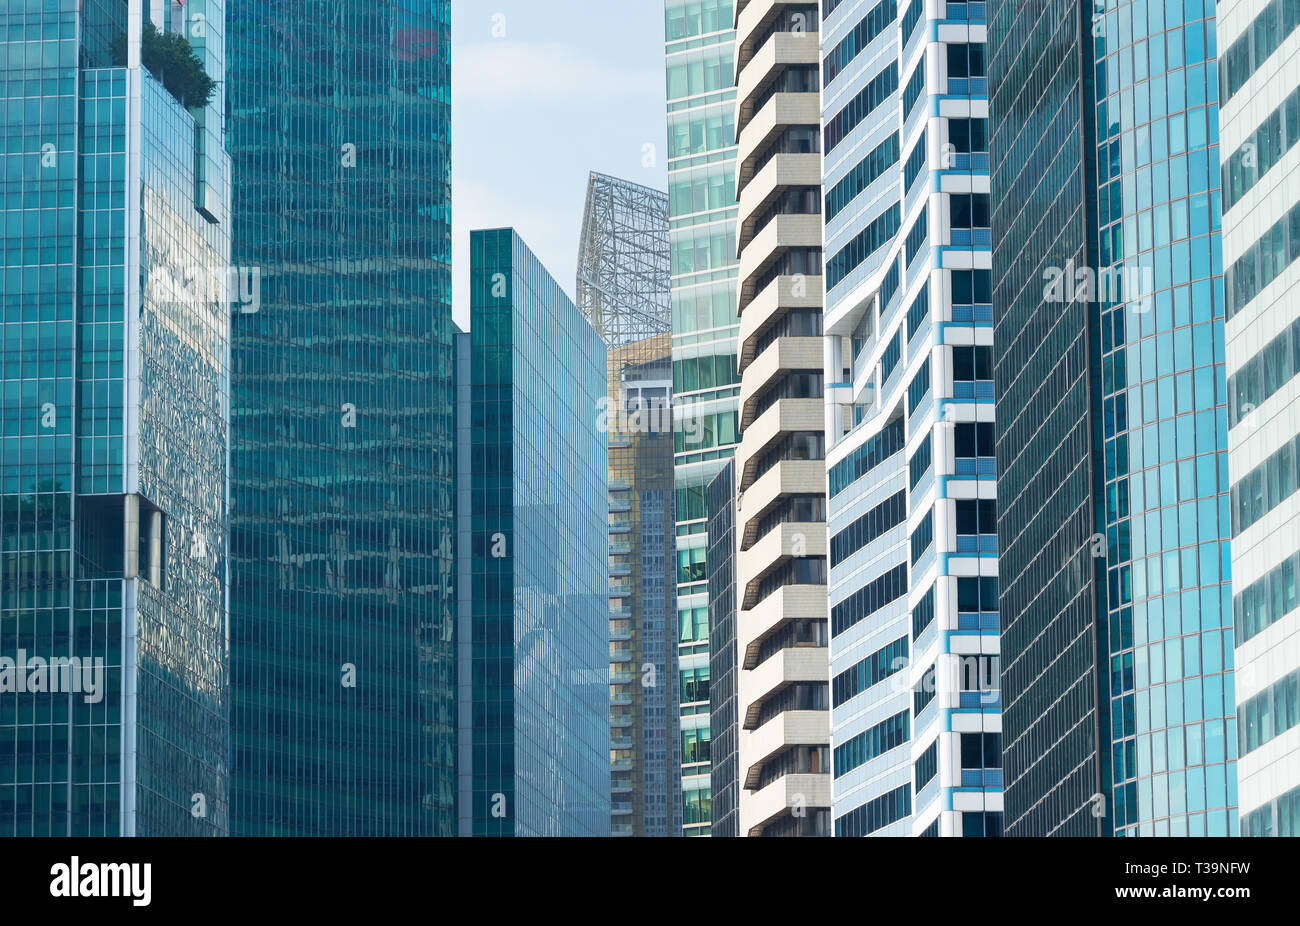 Singapore architecture, cityscape with skyscrapers glass facades, business and finance metropolis theme - Stock Image